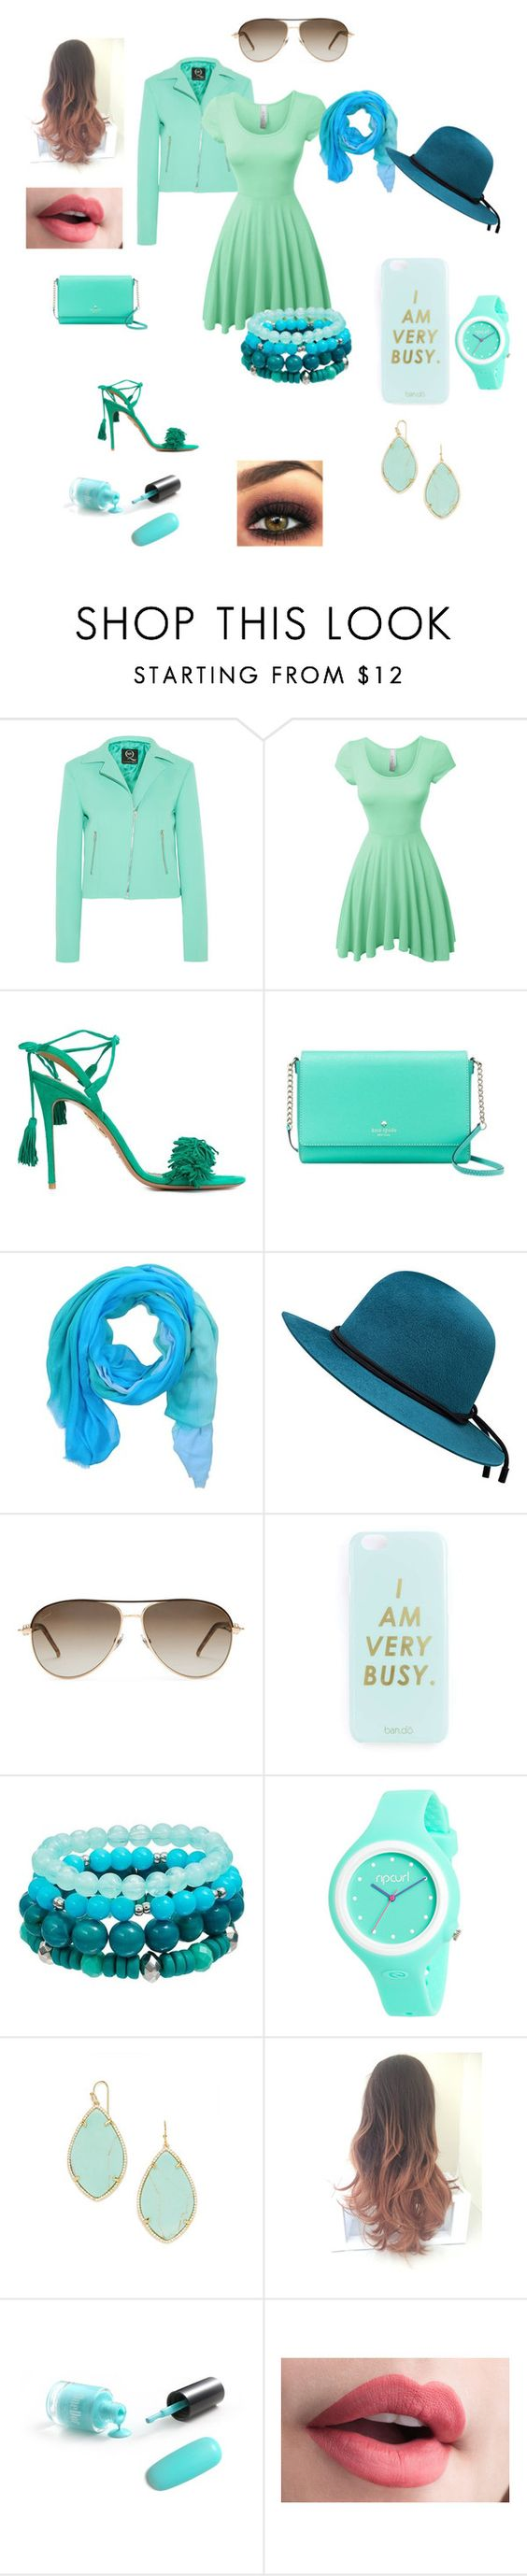 """""""В кафе"""" by tsoivictoria ❤ liked on Polyvore featuring McQ by Alexander McQueen, LE3NO, Aquazzura, Kate Spade, GUESS, Gucci, Miss Selfridge, Rip Curl and BaubleBar"""